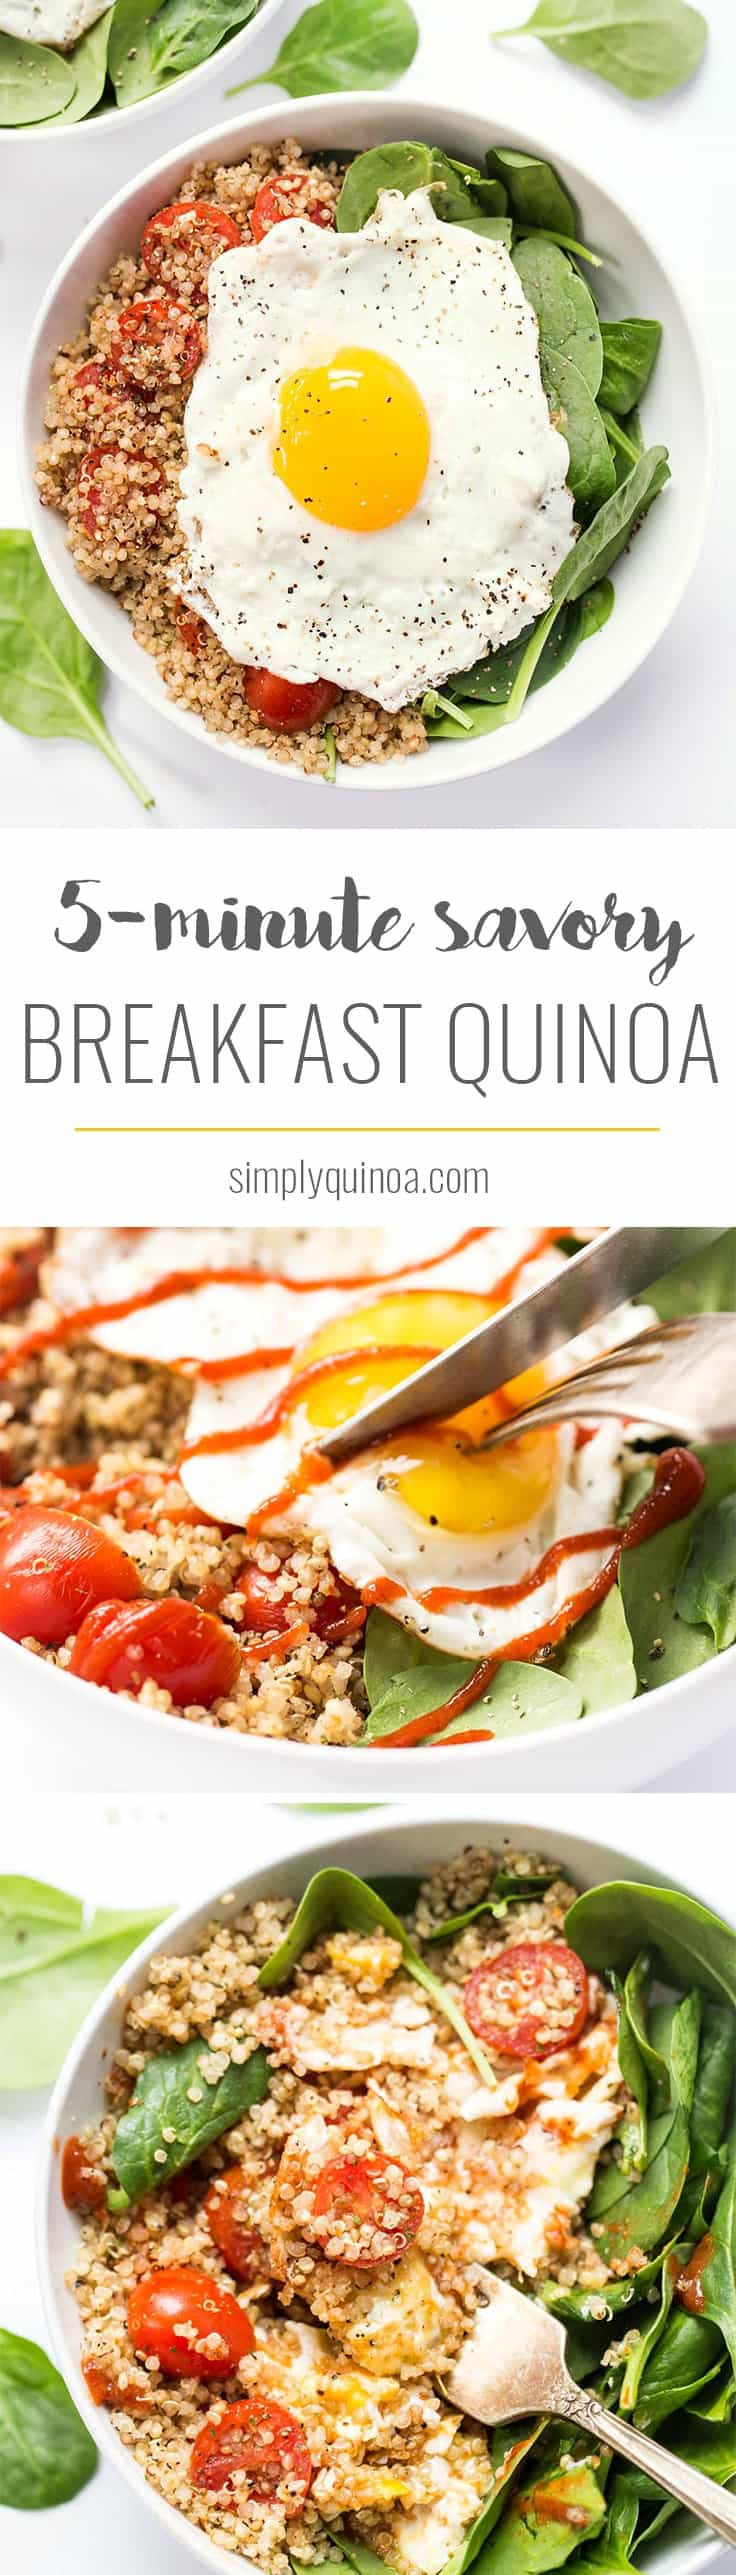 These SAVORY Quinoa Breakfast Bowls take just 5 minutes to make and are packed with healthy ingredients >> spinach, tomatoes and fried eggs make this a protein-packed breakfast!